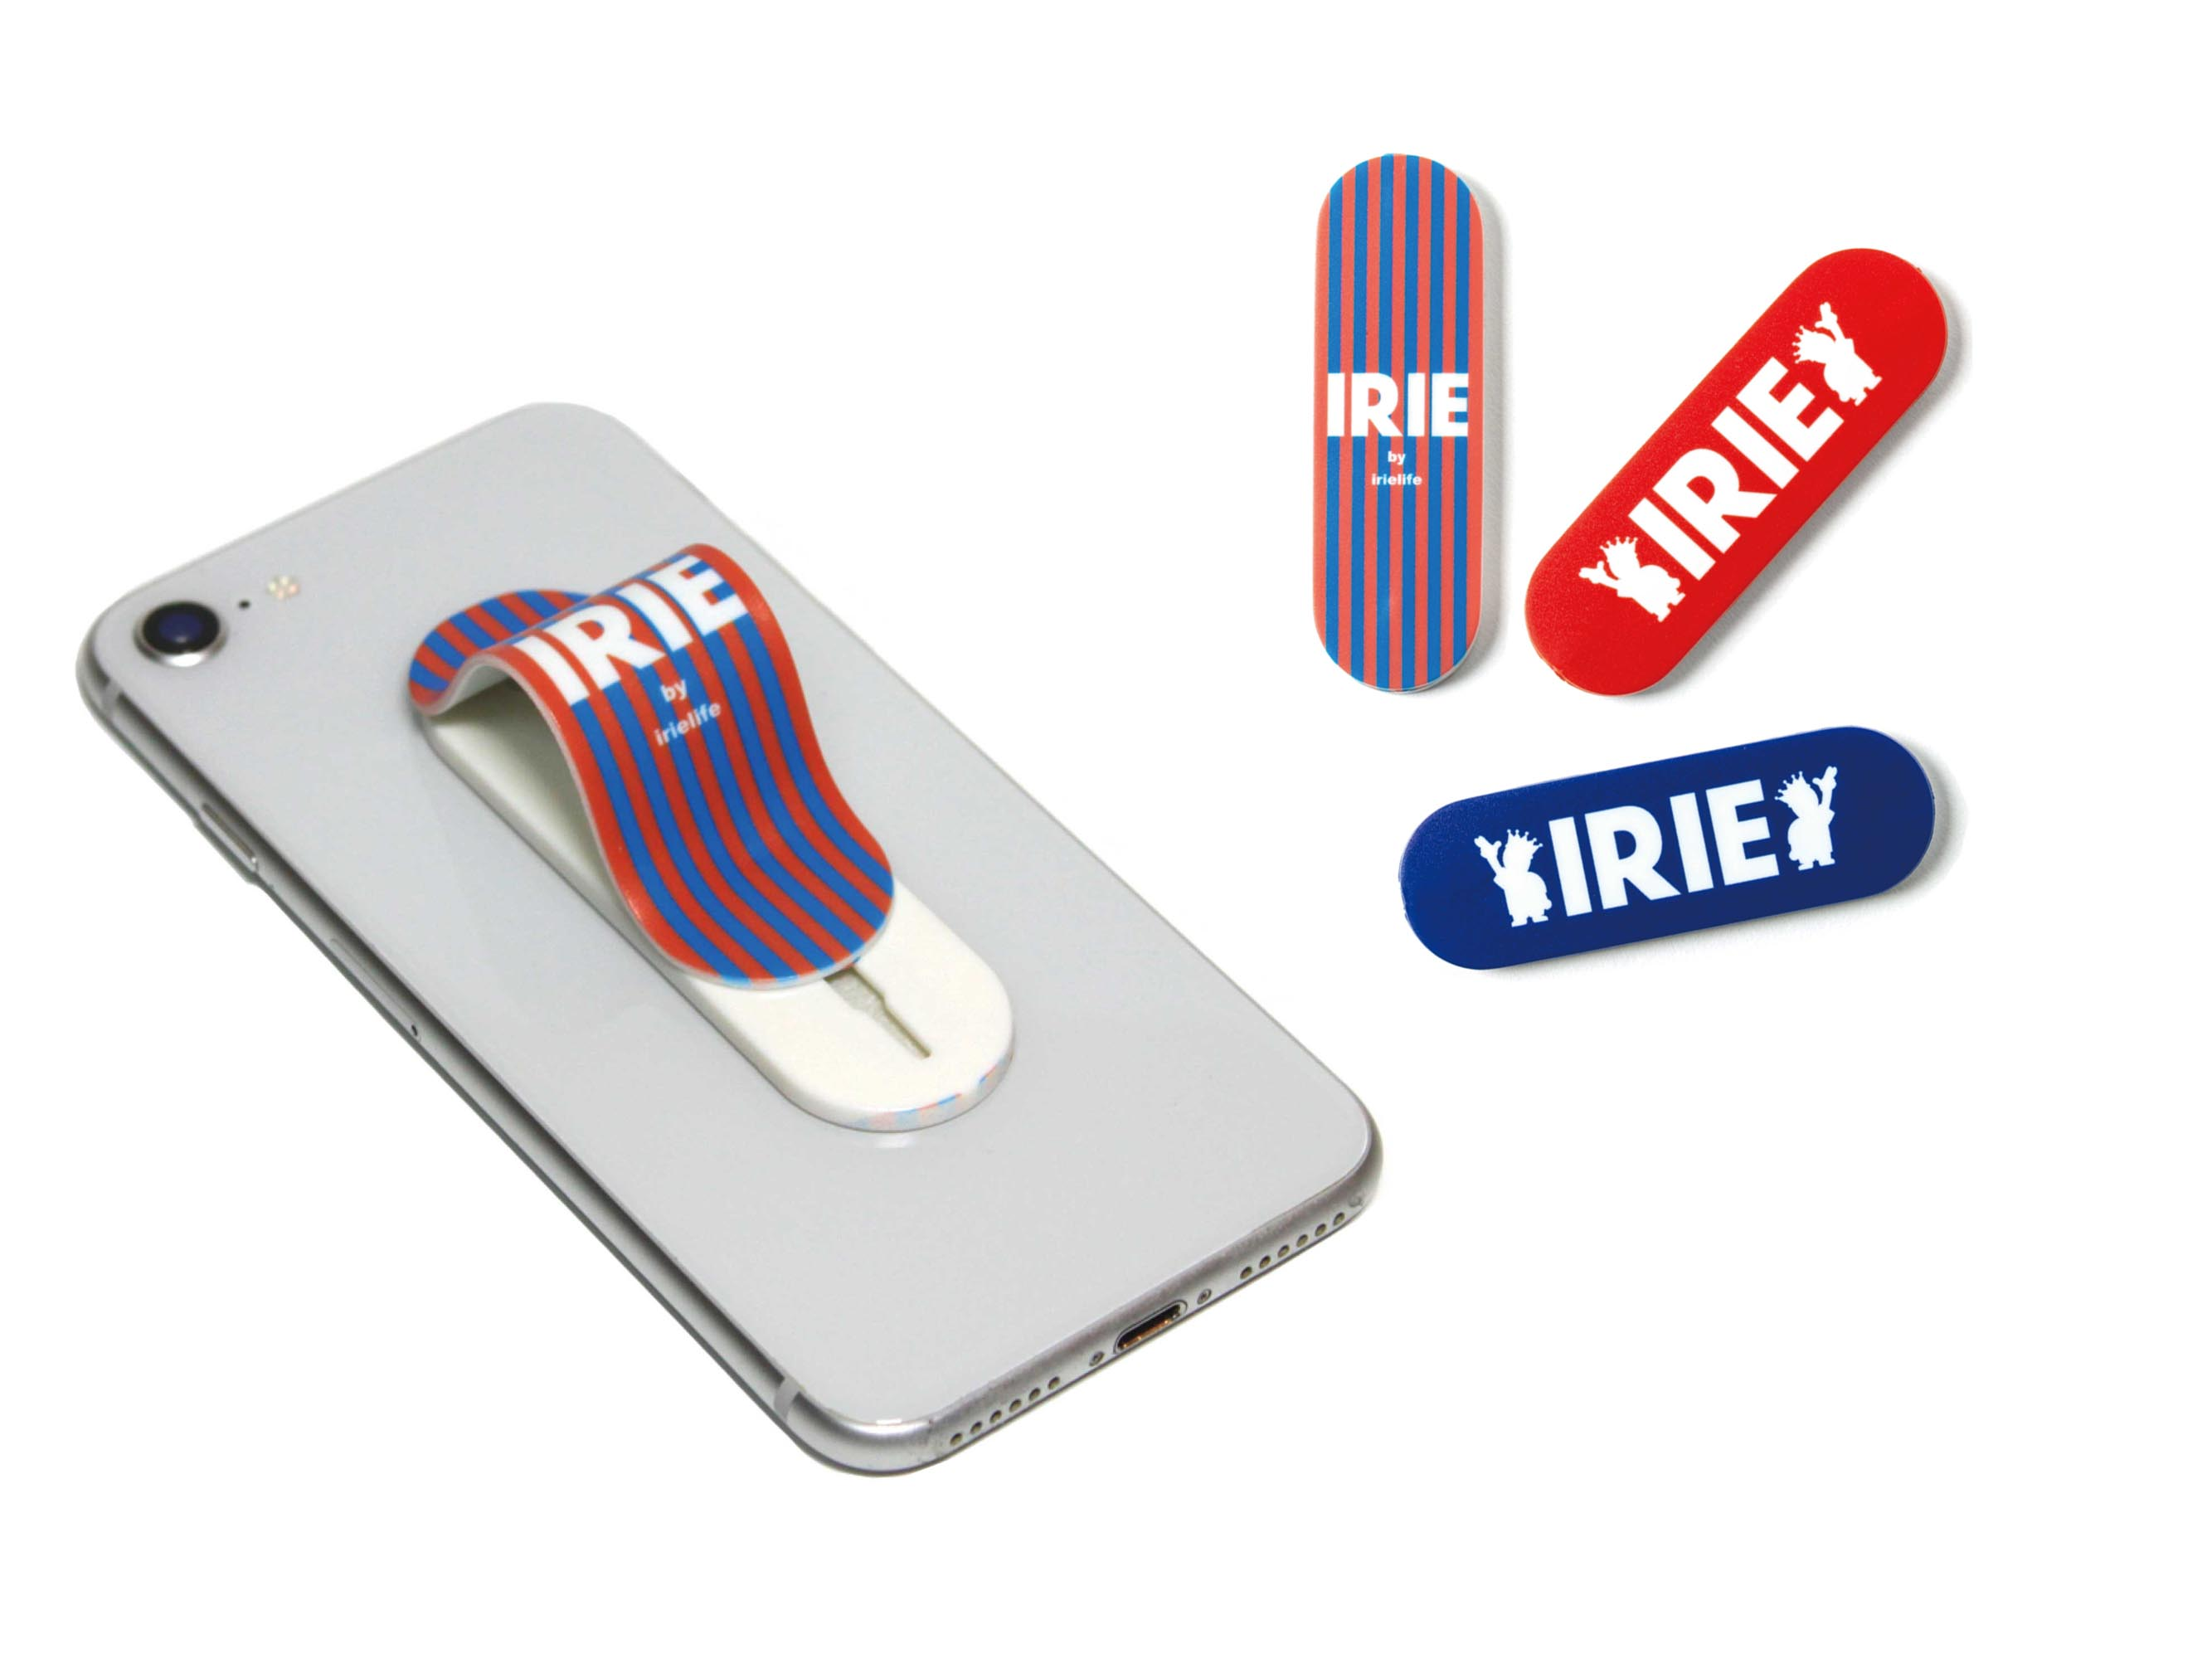 IRIE SILICON SMARTPHONE RING - IRIE by irielife